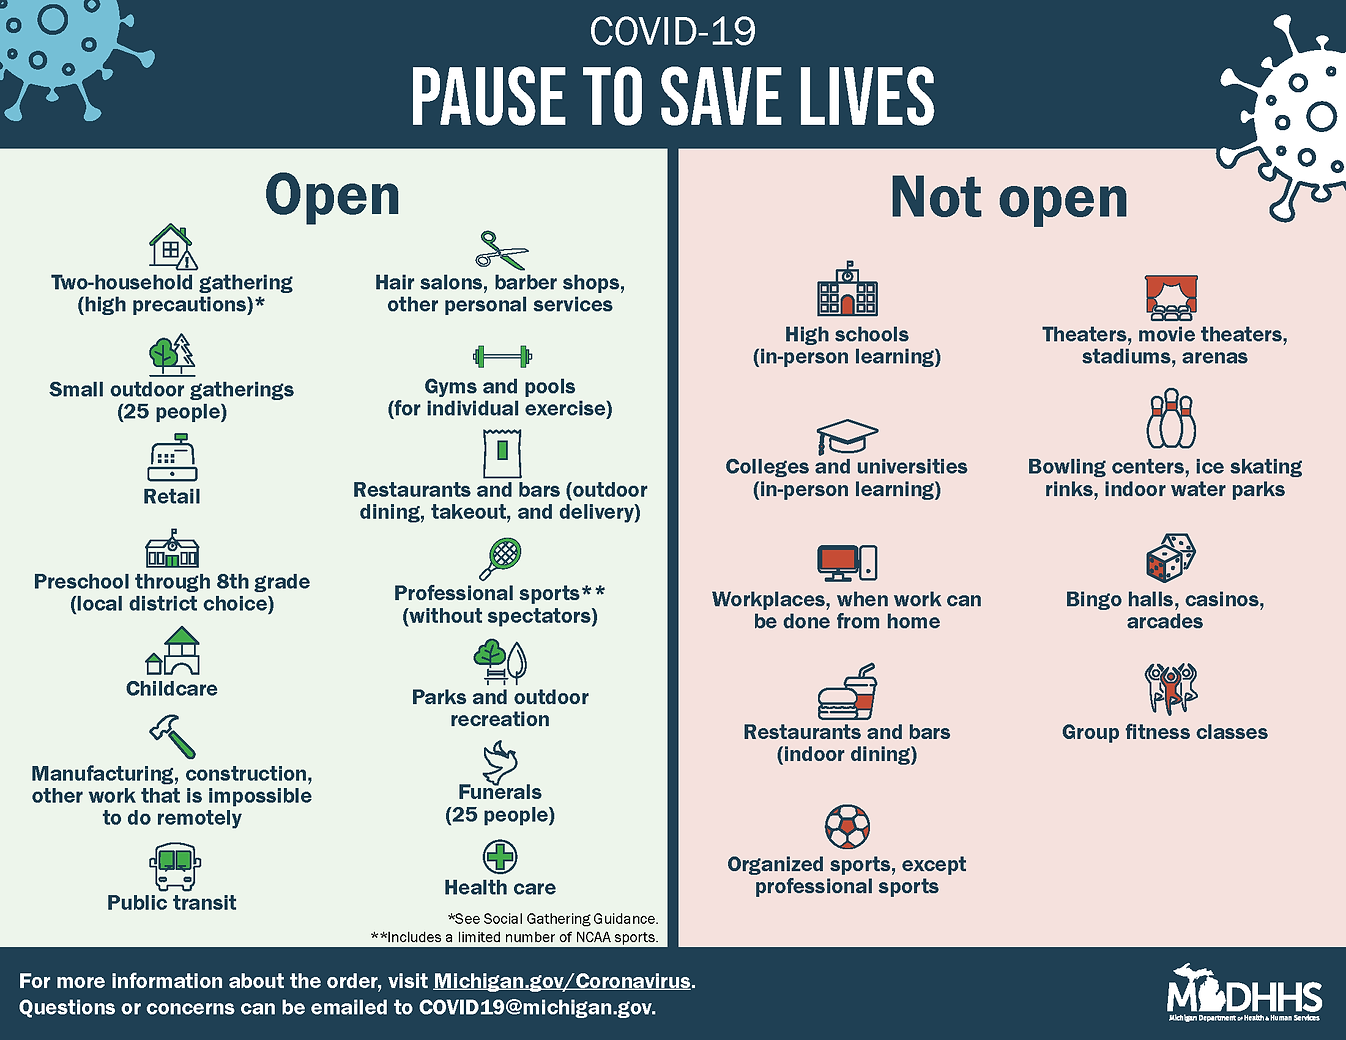 Pause_to_Save_Lives_707810_7 (1).png